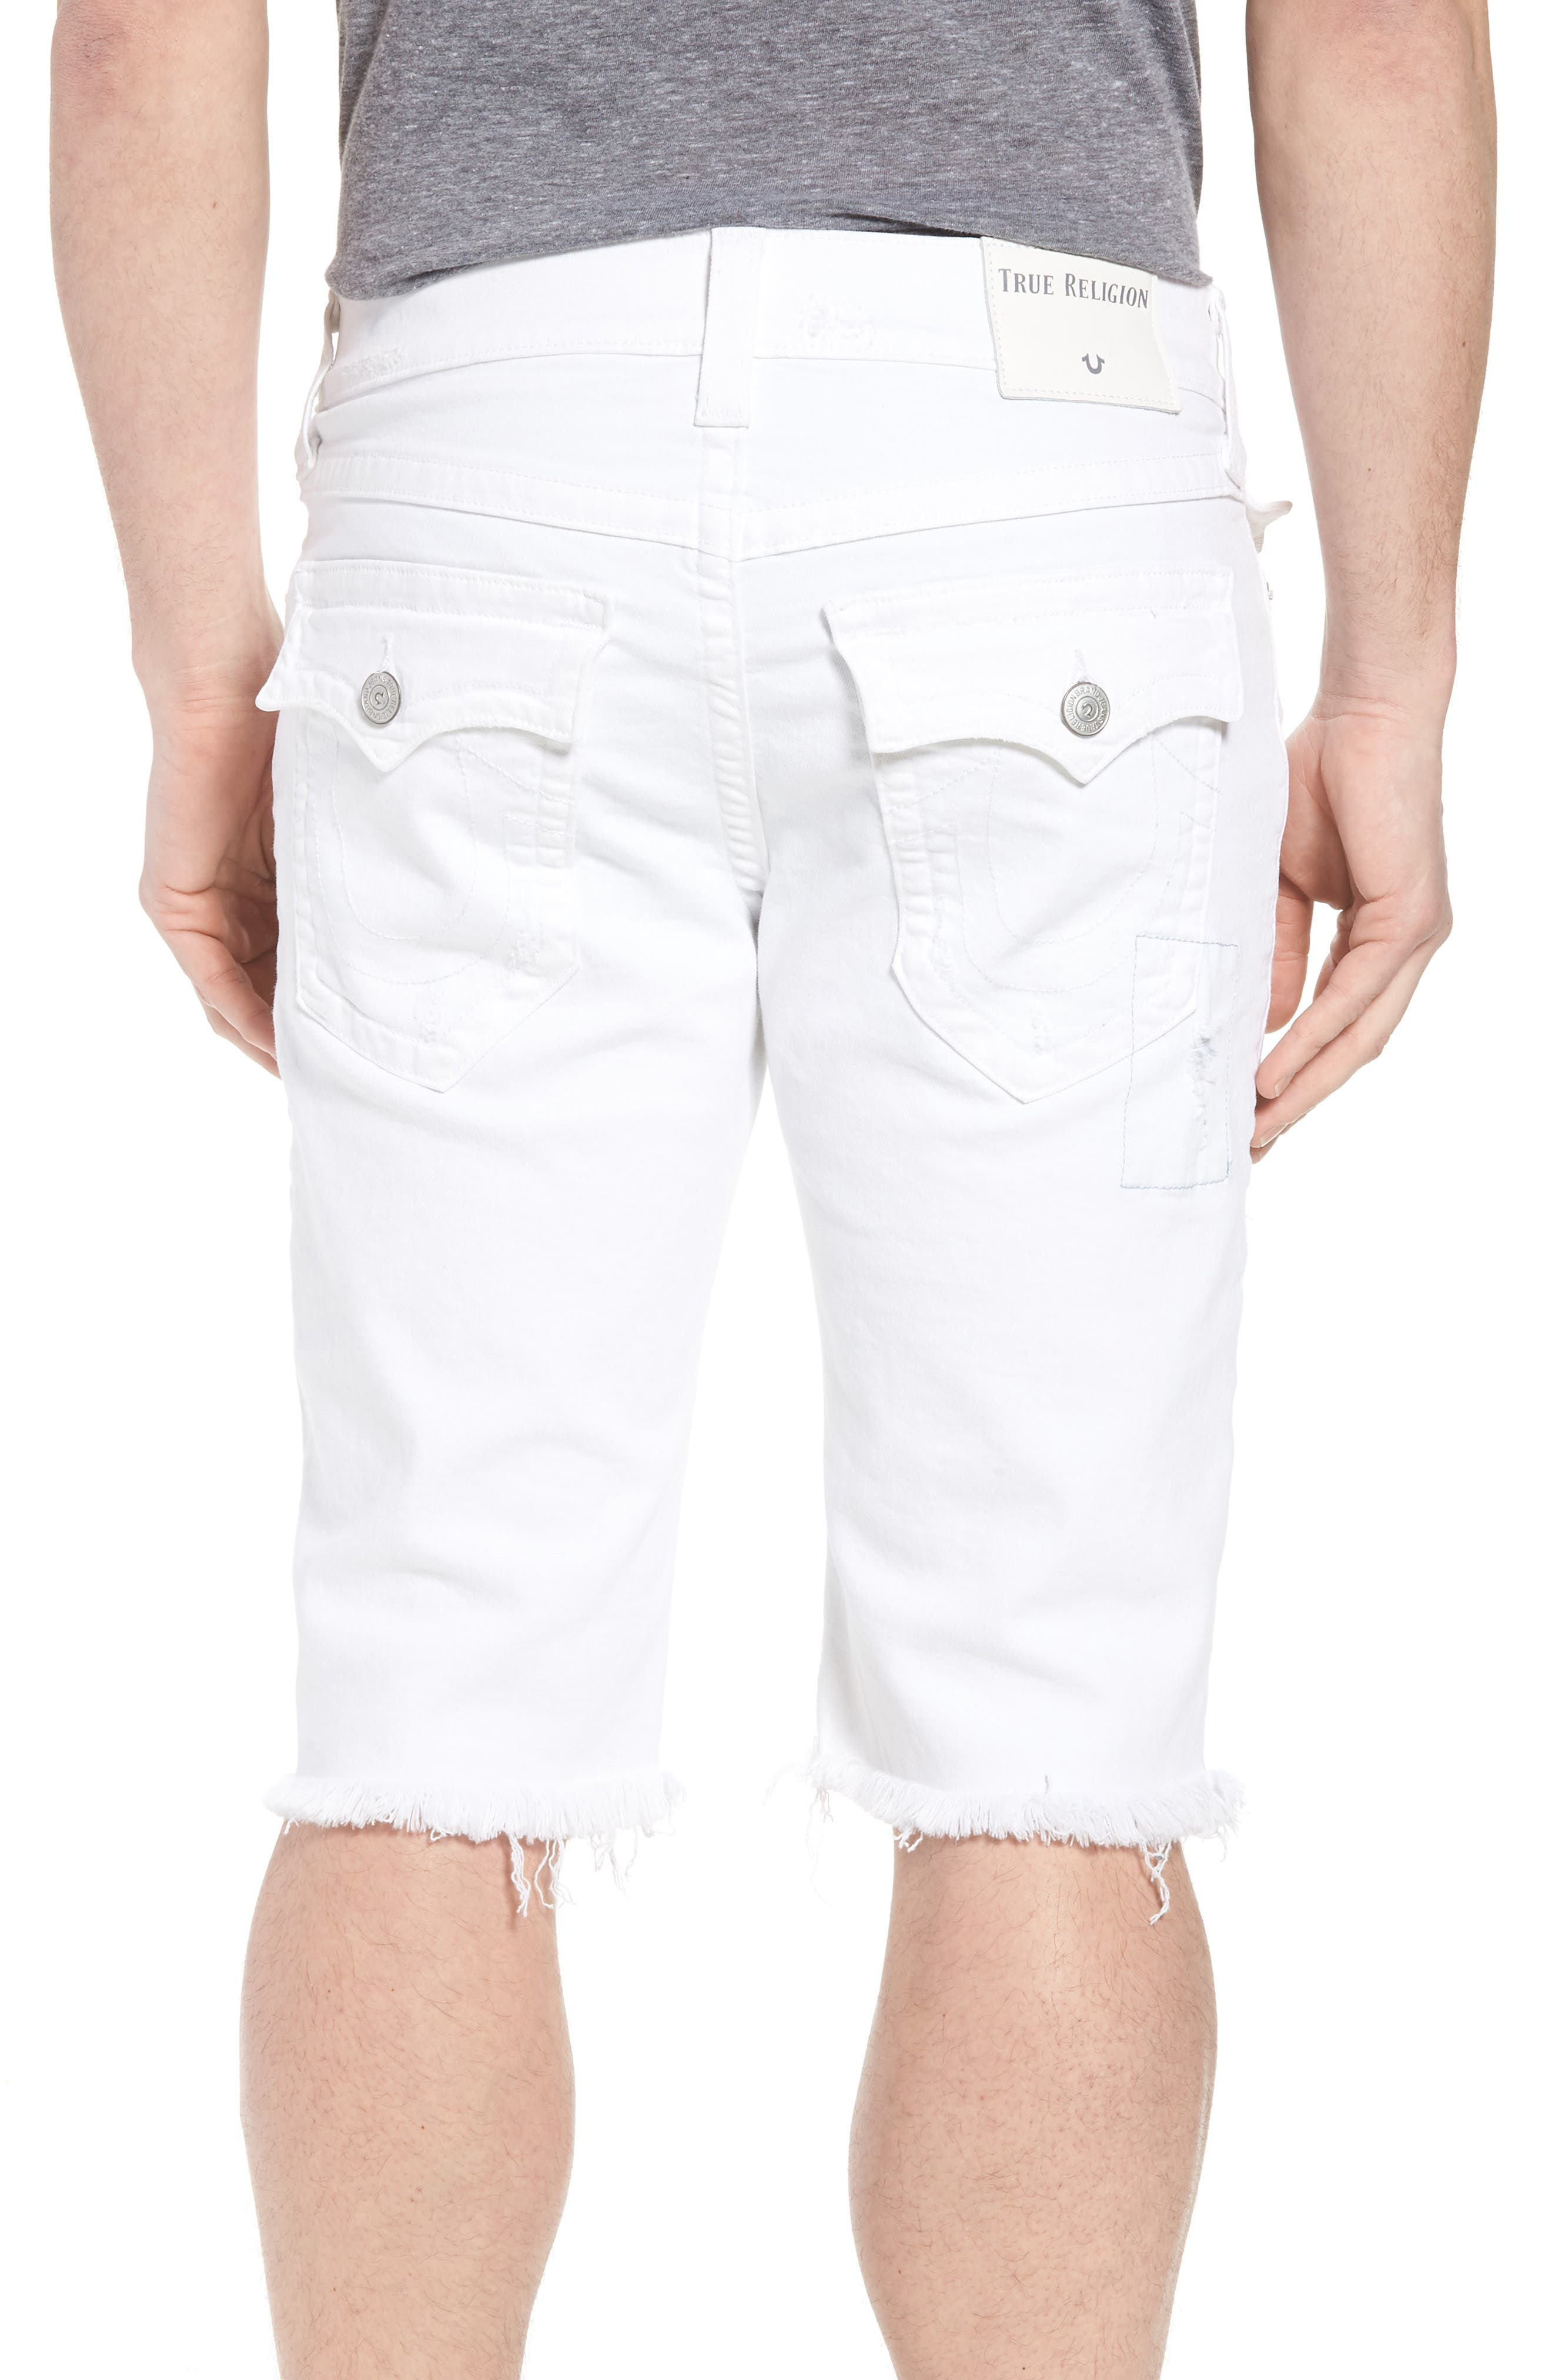 Ricky Relaxed Fit Denim Shorts,                             Alternate thumbnail 2, color,                             Eqxl Street Cred